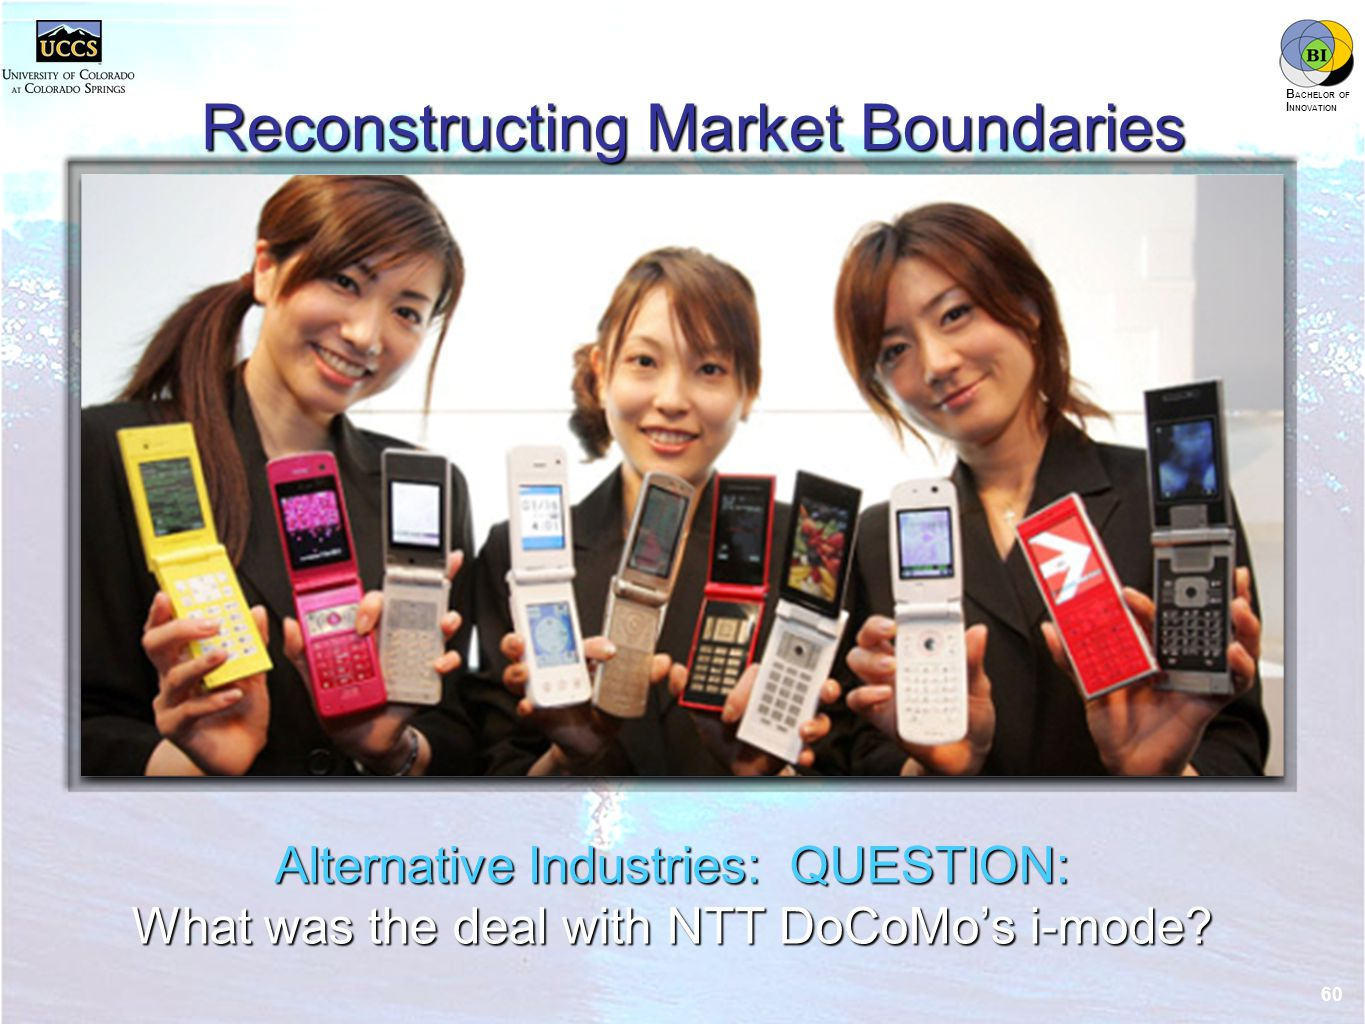 innovation.uccs.edu B ACHELOR OF I NNOVATION ™ Reconstructing Market Boundaries Alternative Industries: QUESTION: What was the deal with NTT DoCoMo's